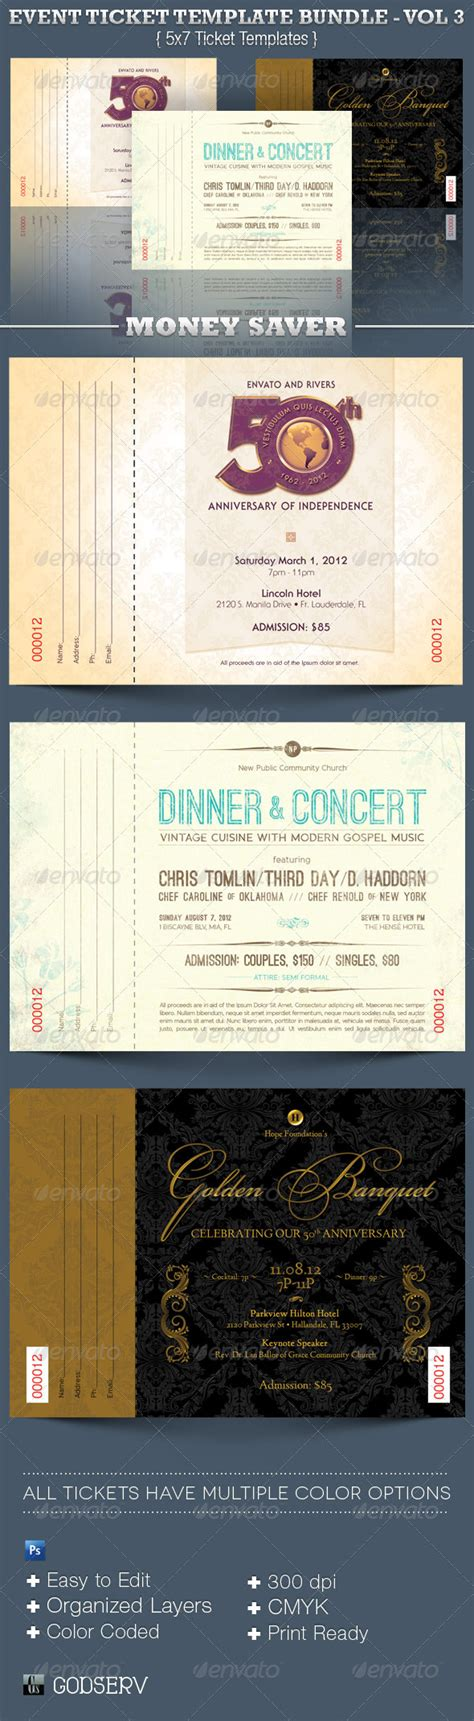 Event Ticket Template Bundle Volume 3 Graphicriver Event Ticket Template Illustrator